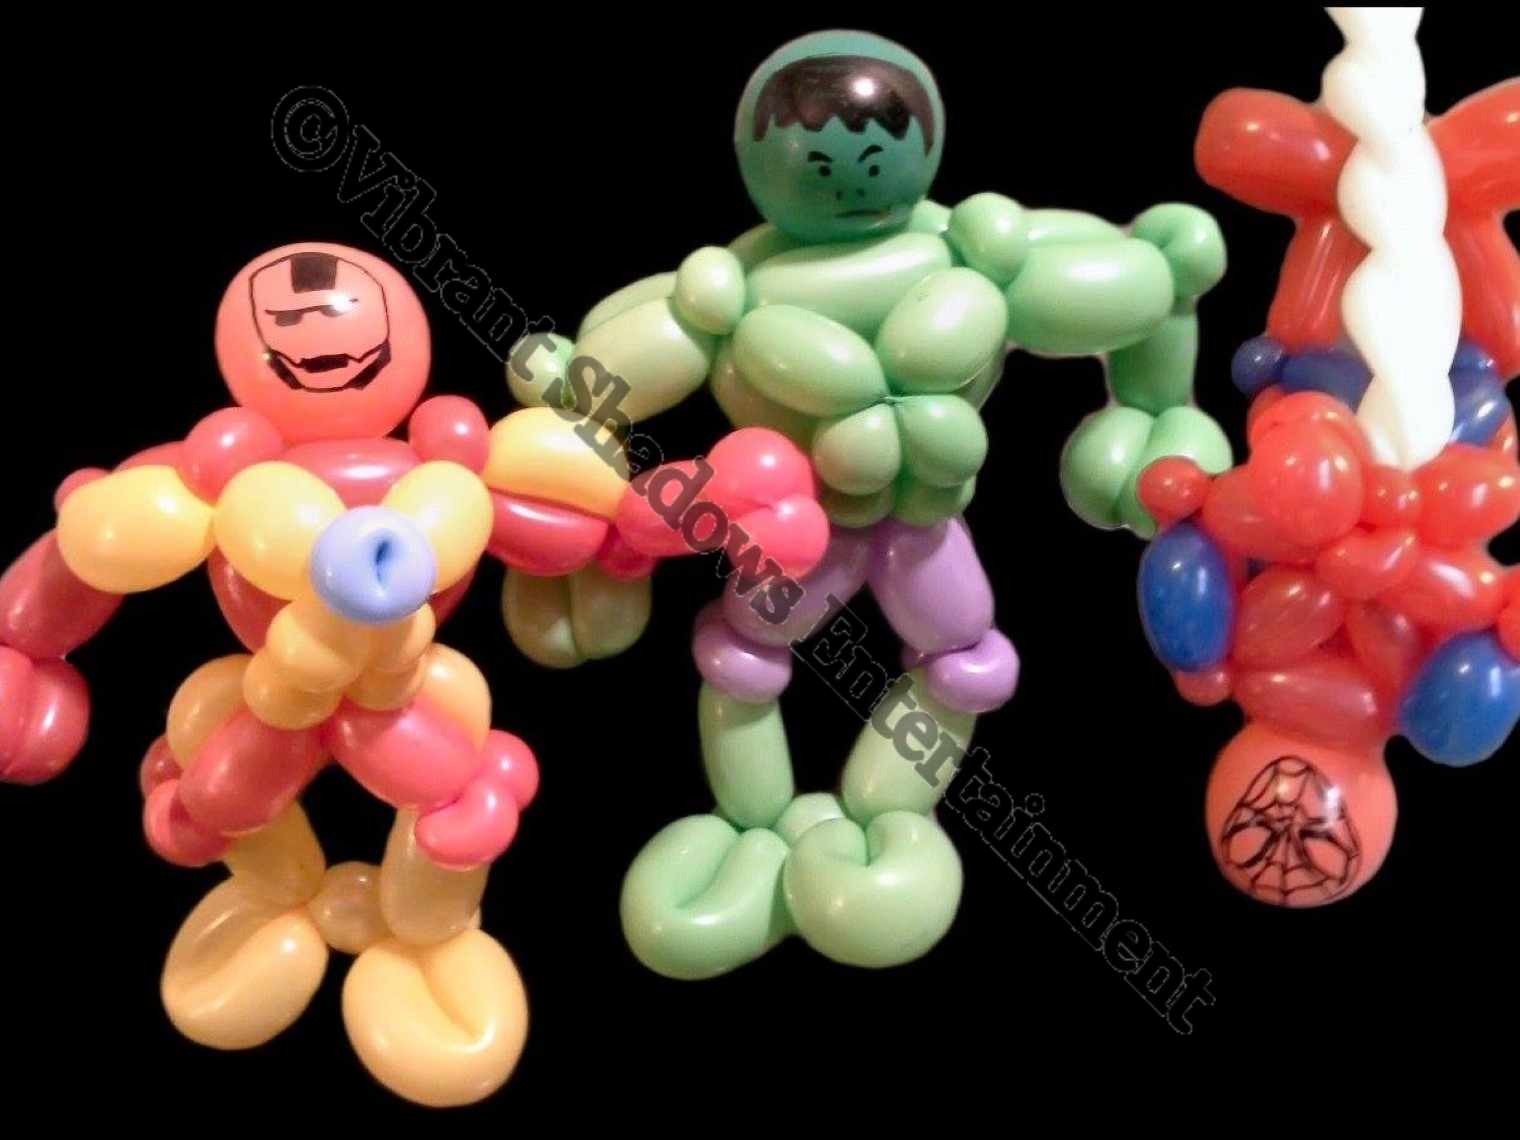 Superhero balloon sculptures